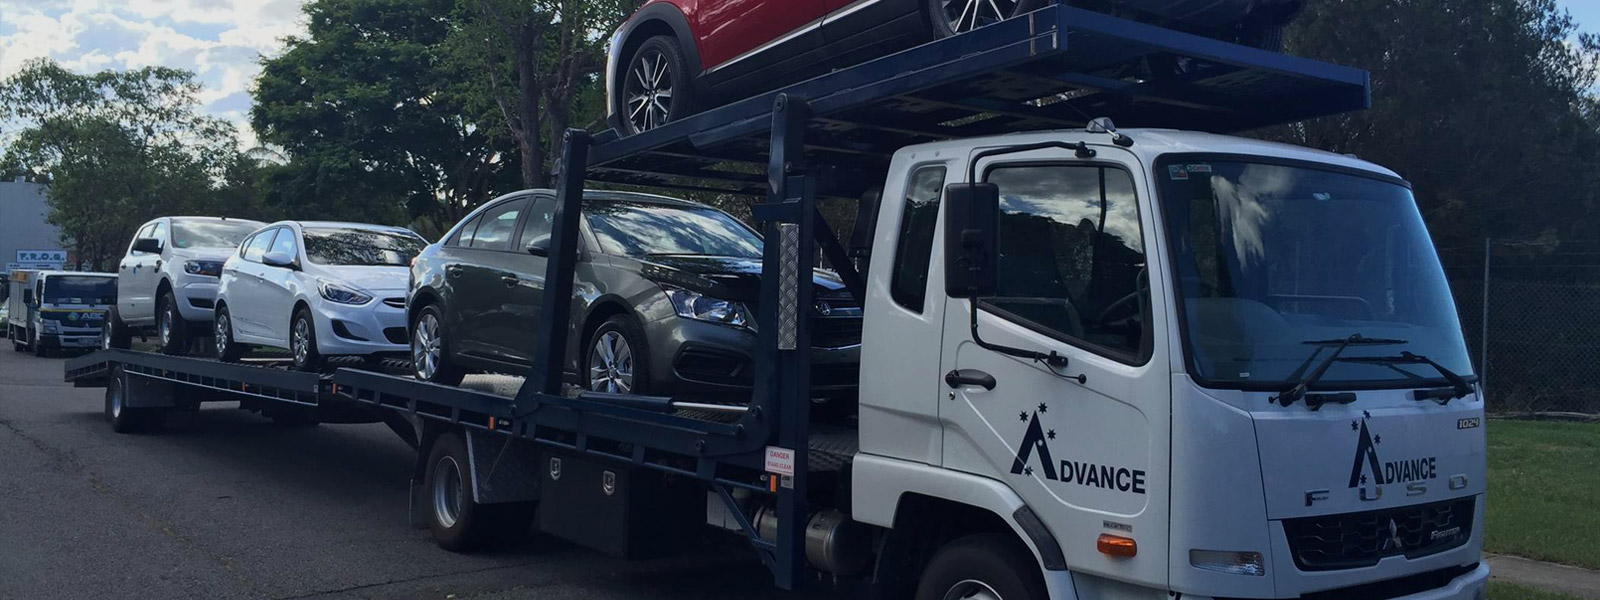 Car Carriers For Sale >> Advance Car Carriers